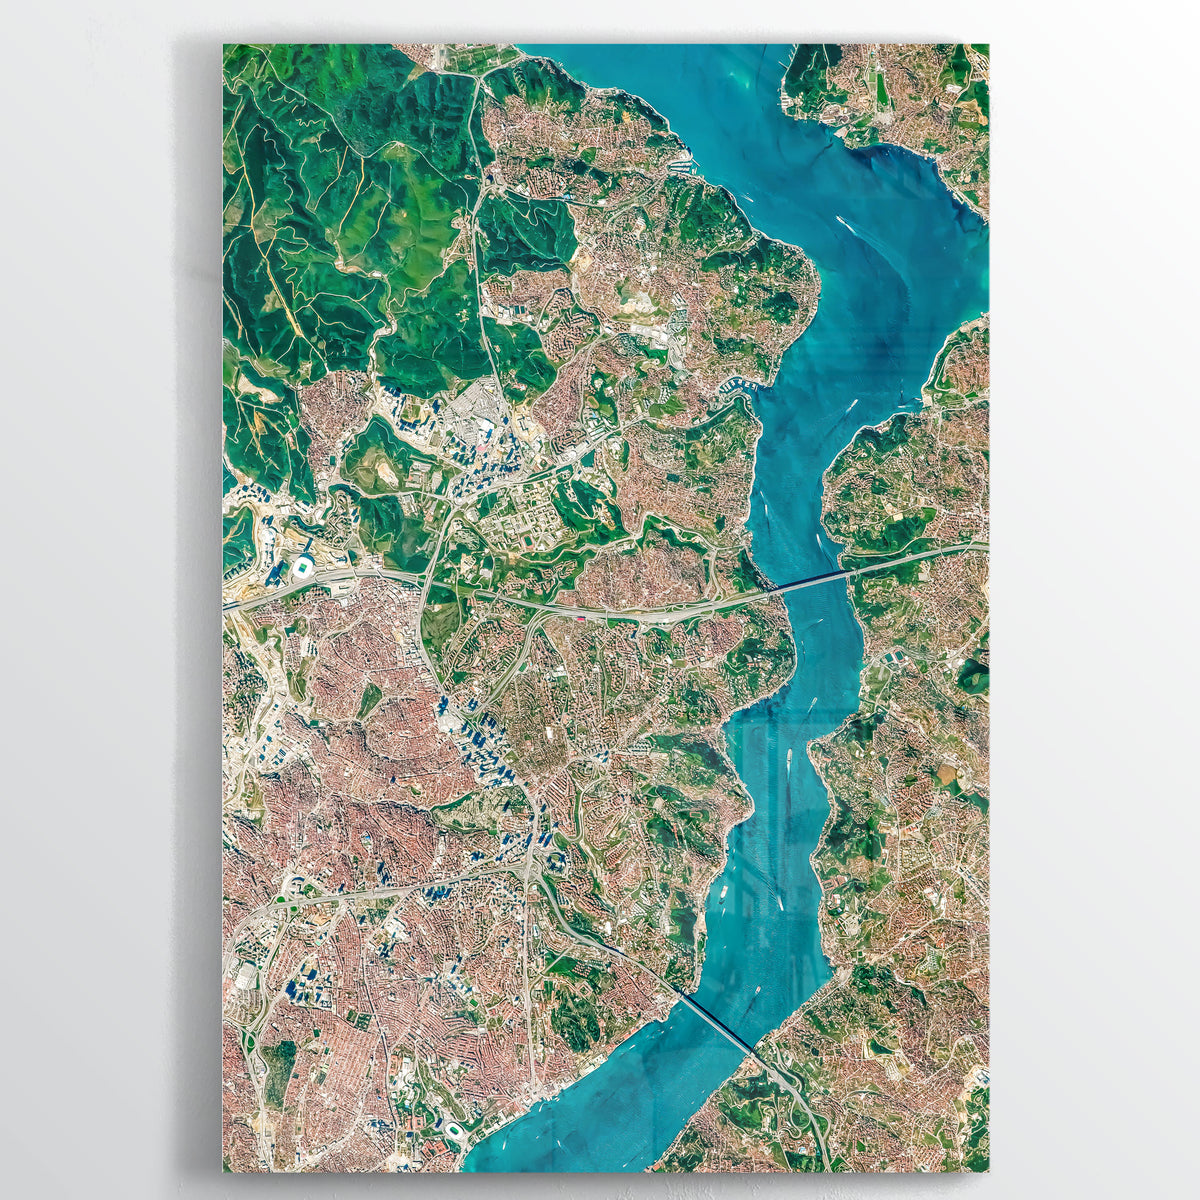 Bosphorus Earth Photography - Floating Acrylic Art - Point Two Design